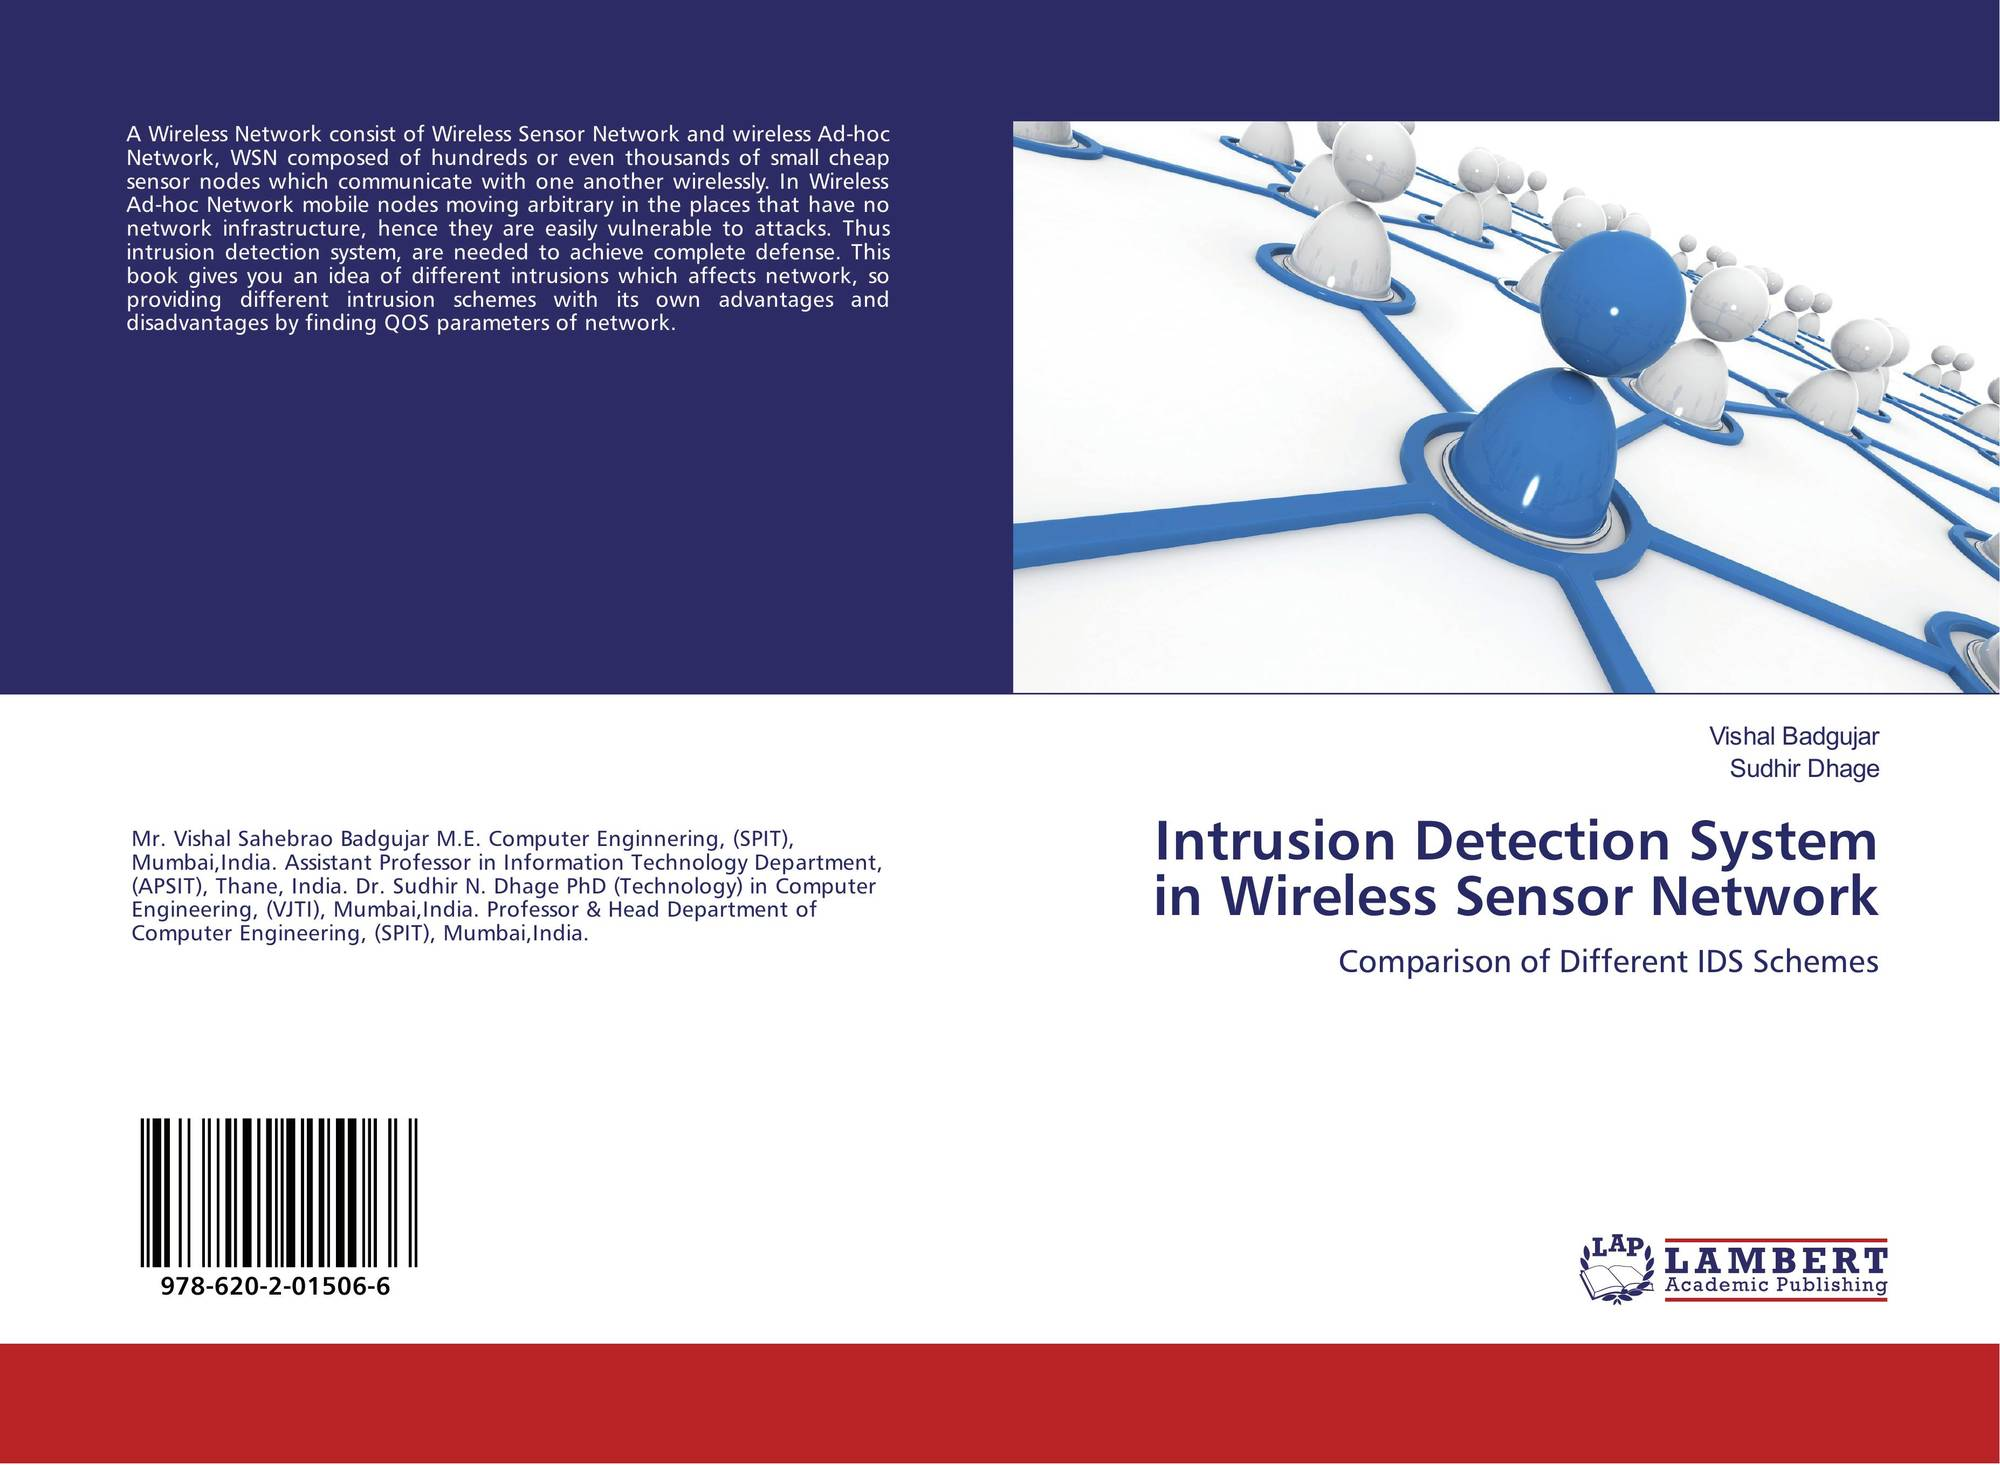 intrusion detection The line between intrusion detection and intrusion prevention systems (ids and ips respectively) has become increasingly blurred however, these two controls are distinguished primarily by how they respond to detected attacks while an intrusion detection system passively monitors for attacks and.